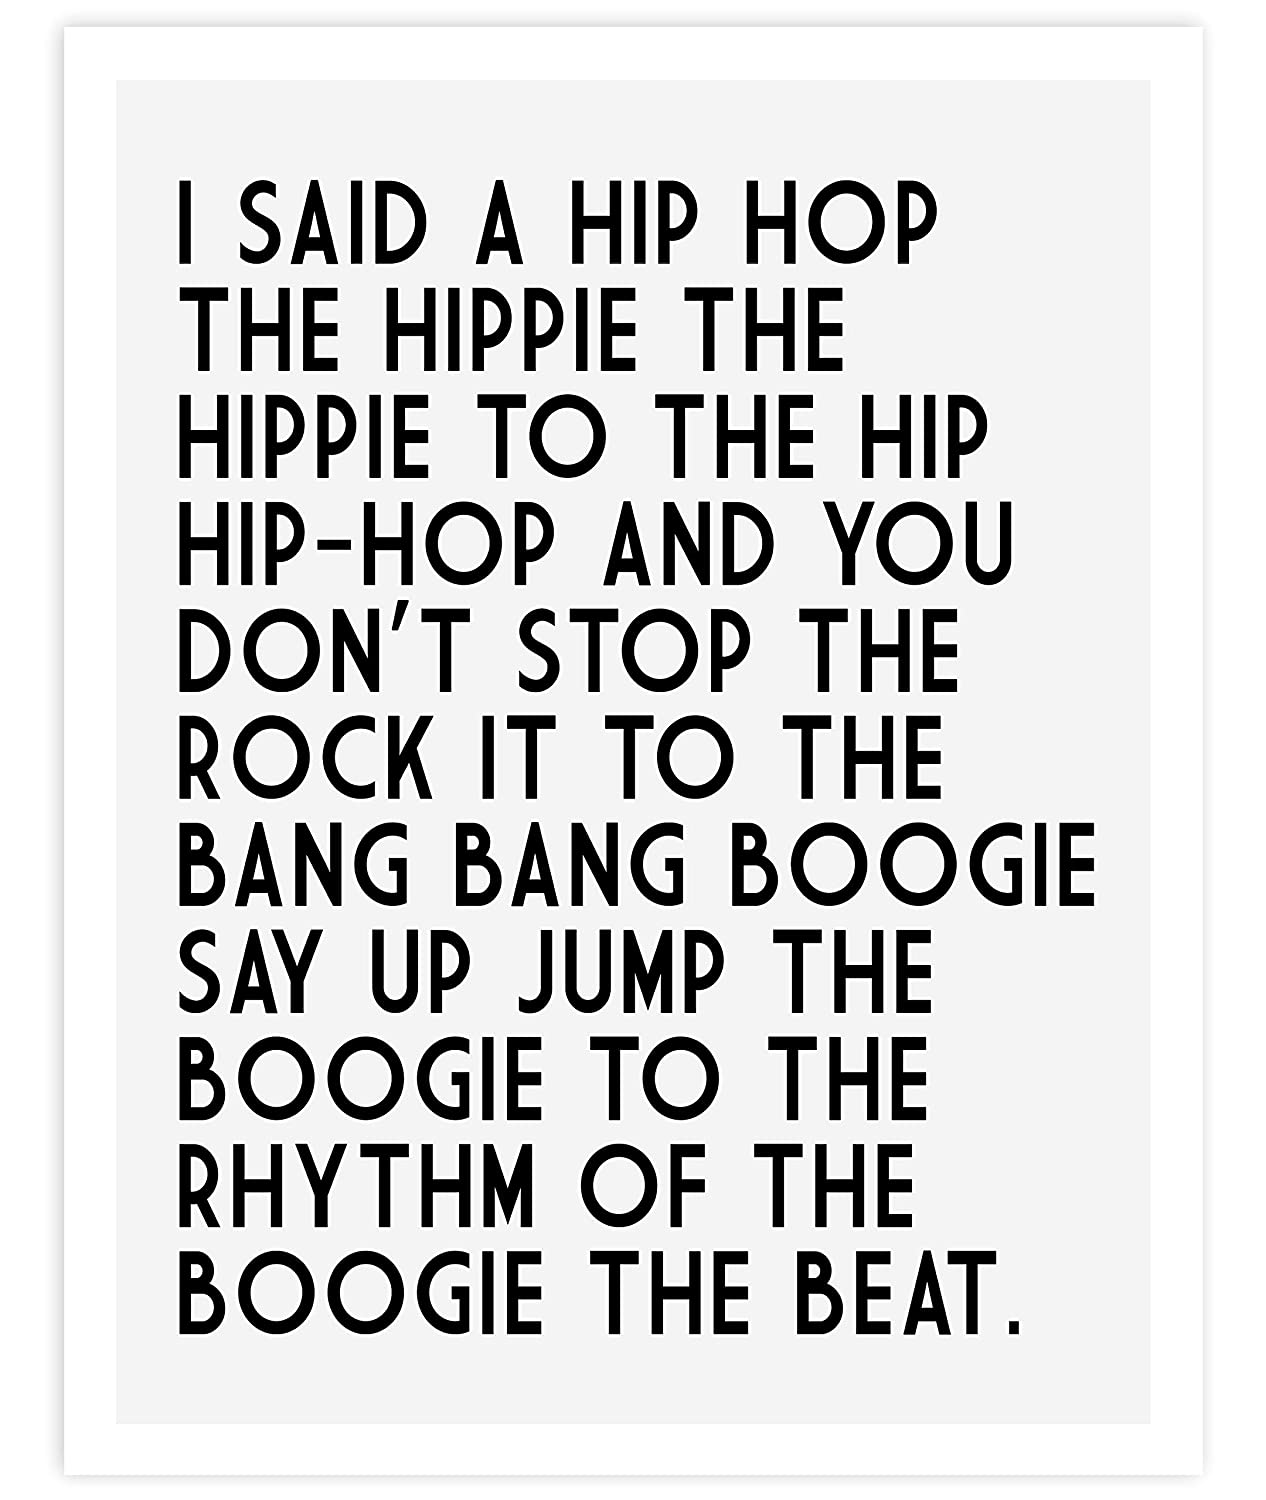 Hip Hop Lyrics Typography Quote Art Print Poster For Home & Bedroom Decor - Fun & Unique Gift for Bedroom & Home Wall Art - 11x14 inches, Unframed